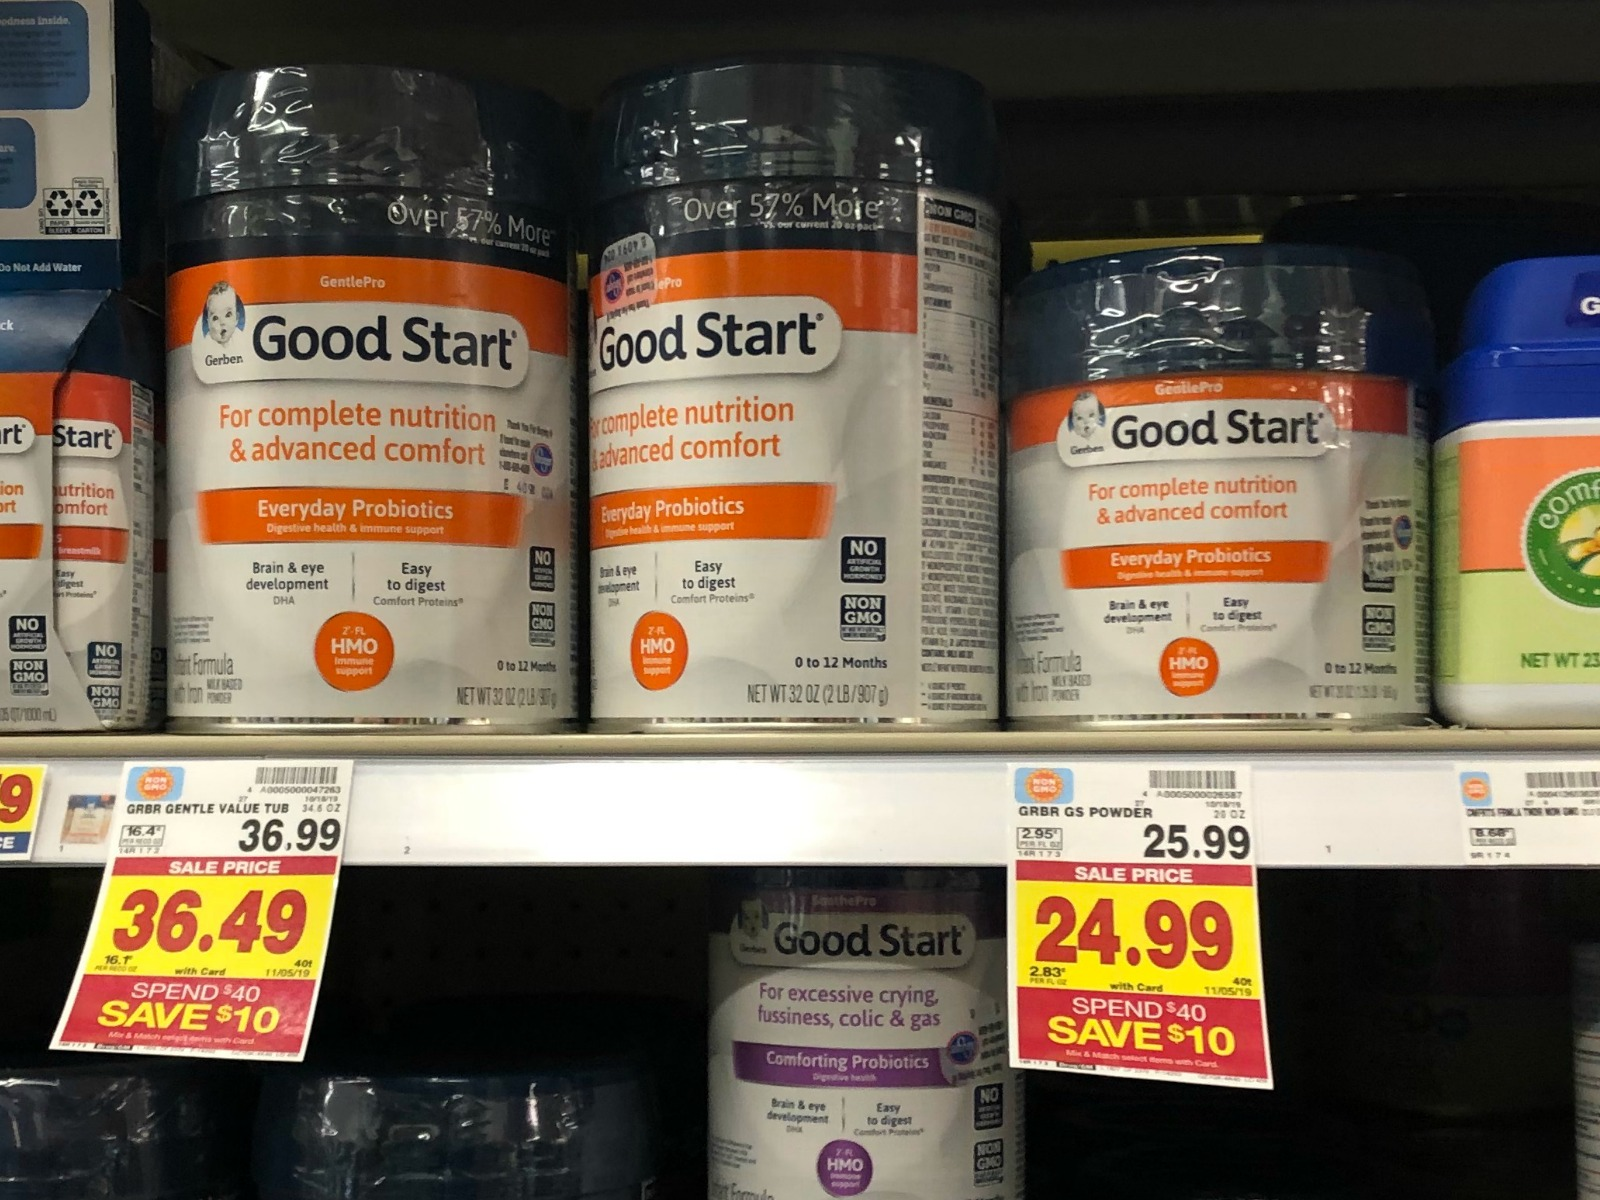 Amazing Deals On Gerber Products As Part Of The Kroger Buy $40 Save $10 Baby Aisle Promo! 1